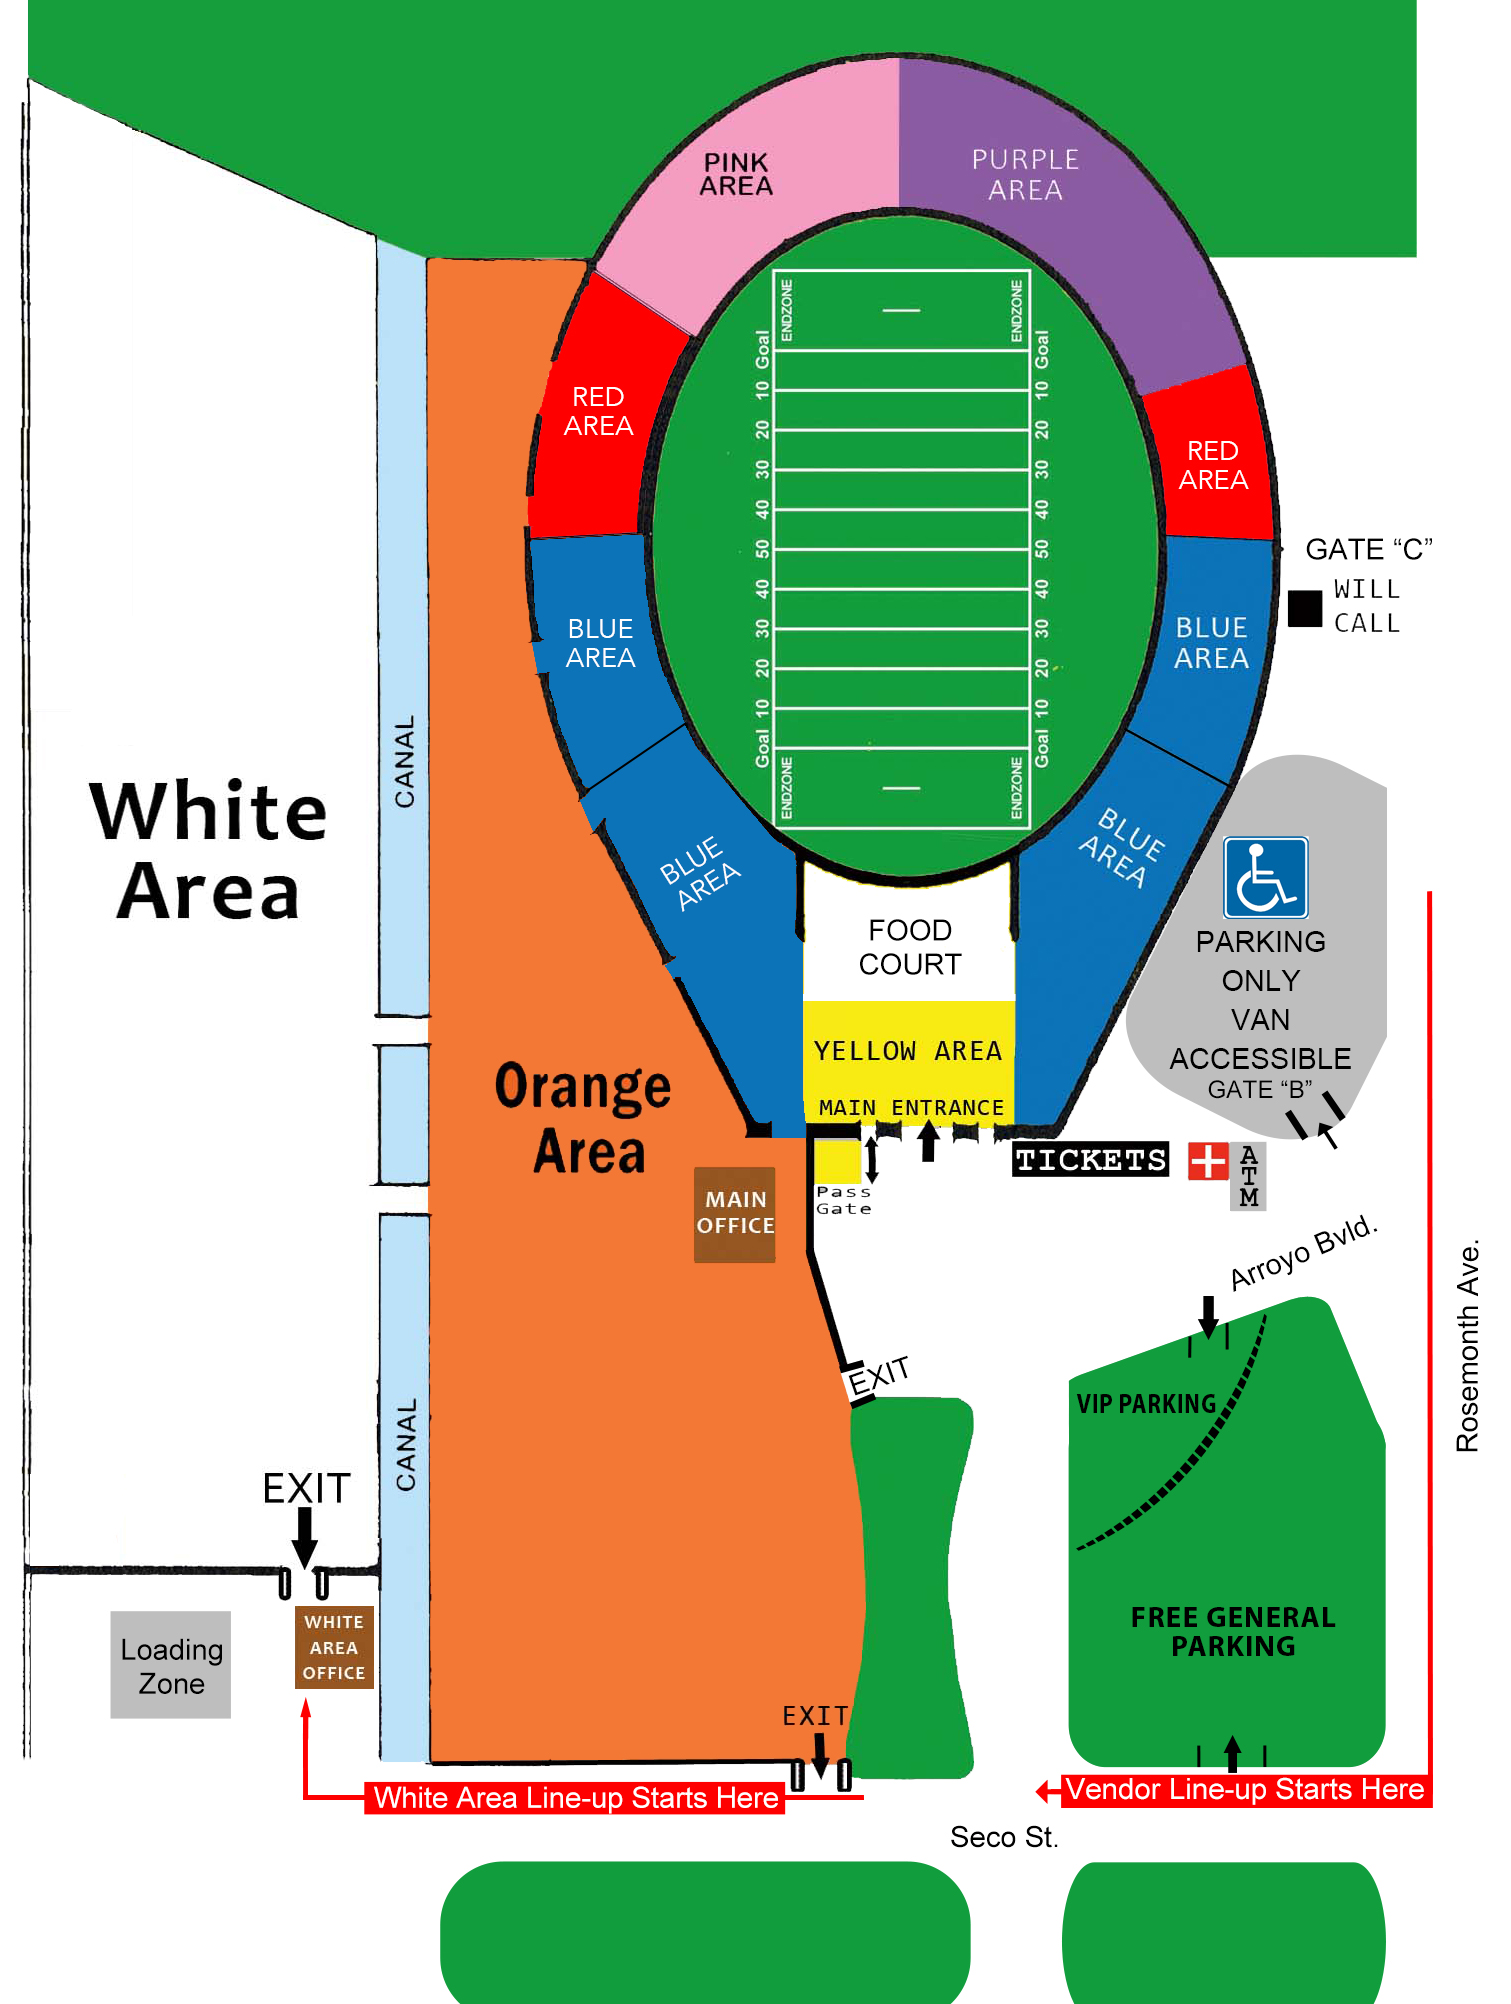 Rose Bowl Parking Map RGCShows | Rose Bowl   RGCShows. The world's most unusual flea  Rose Bowl Parking Map